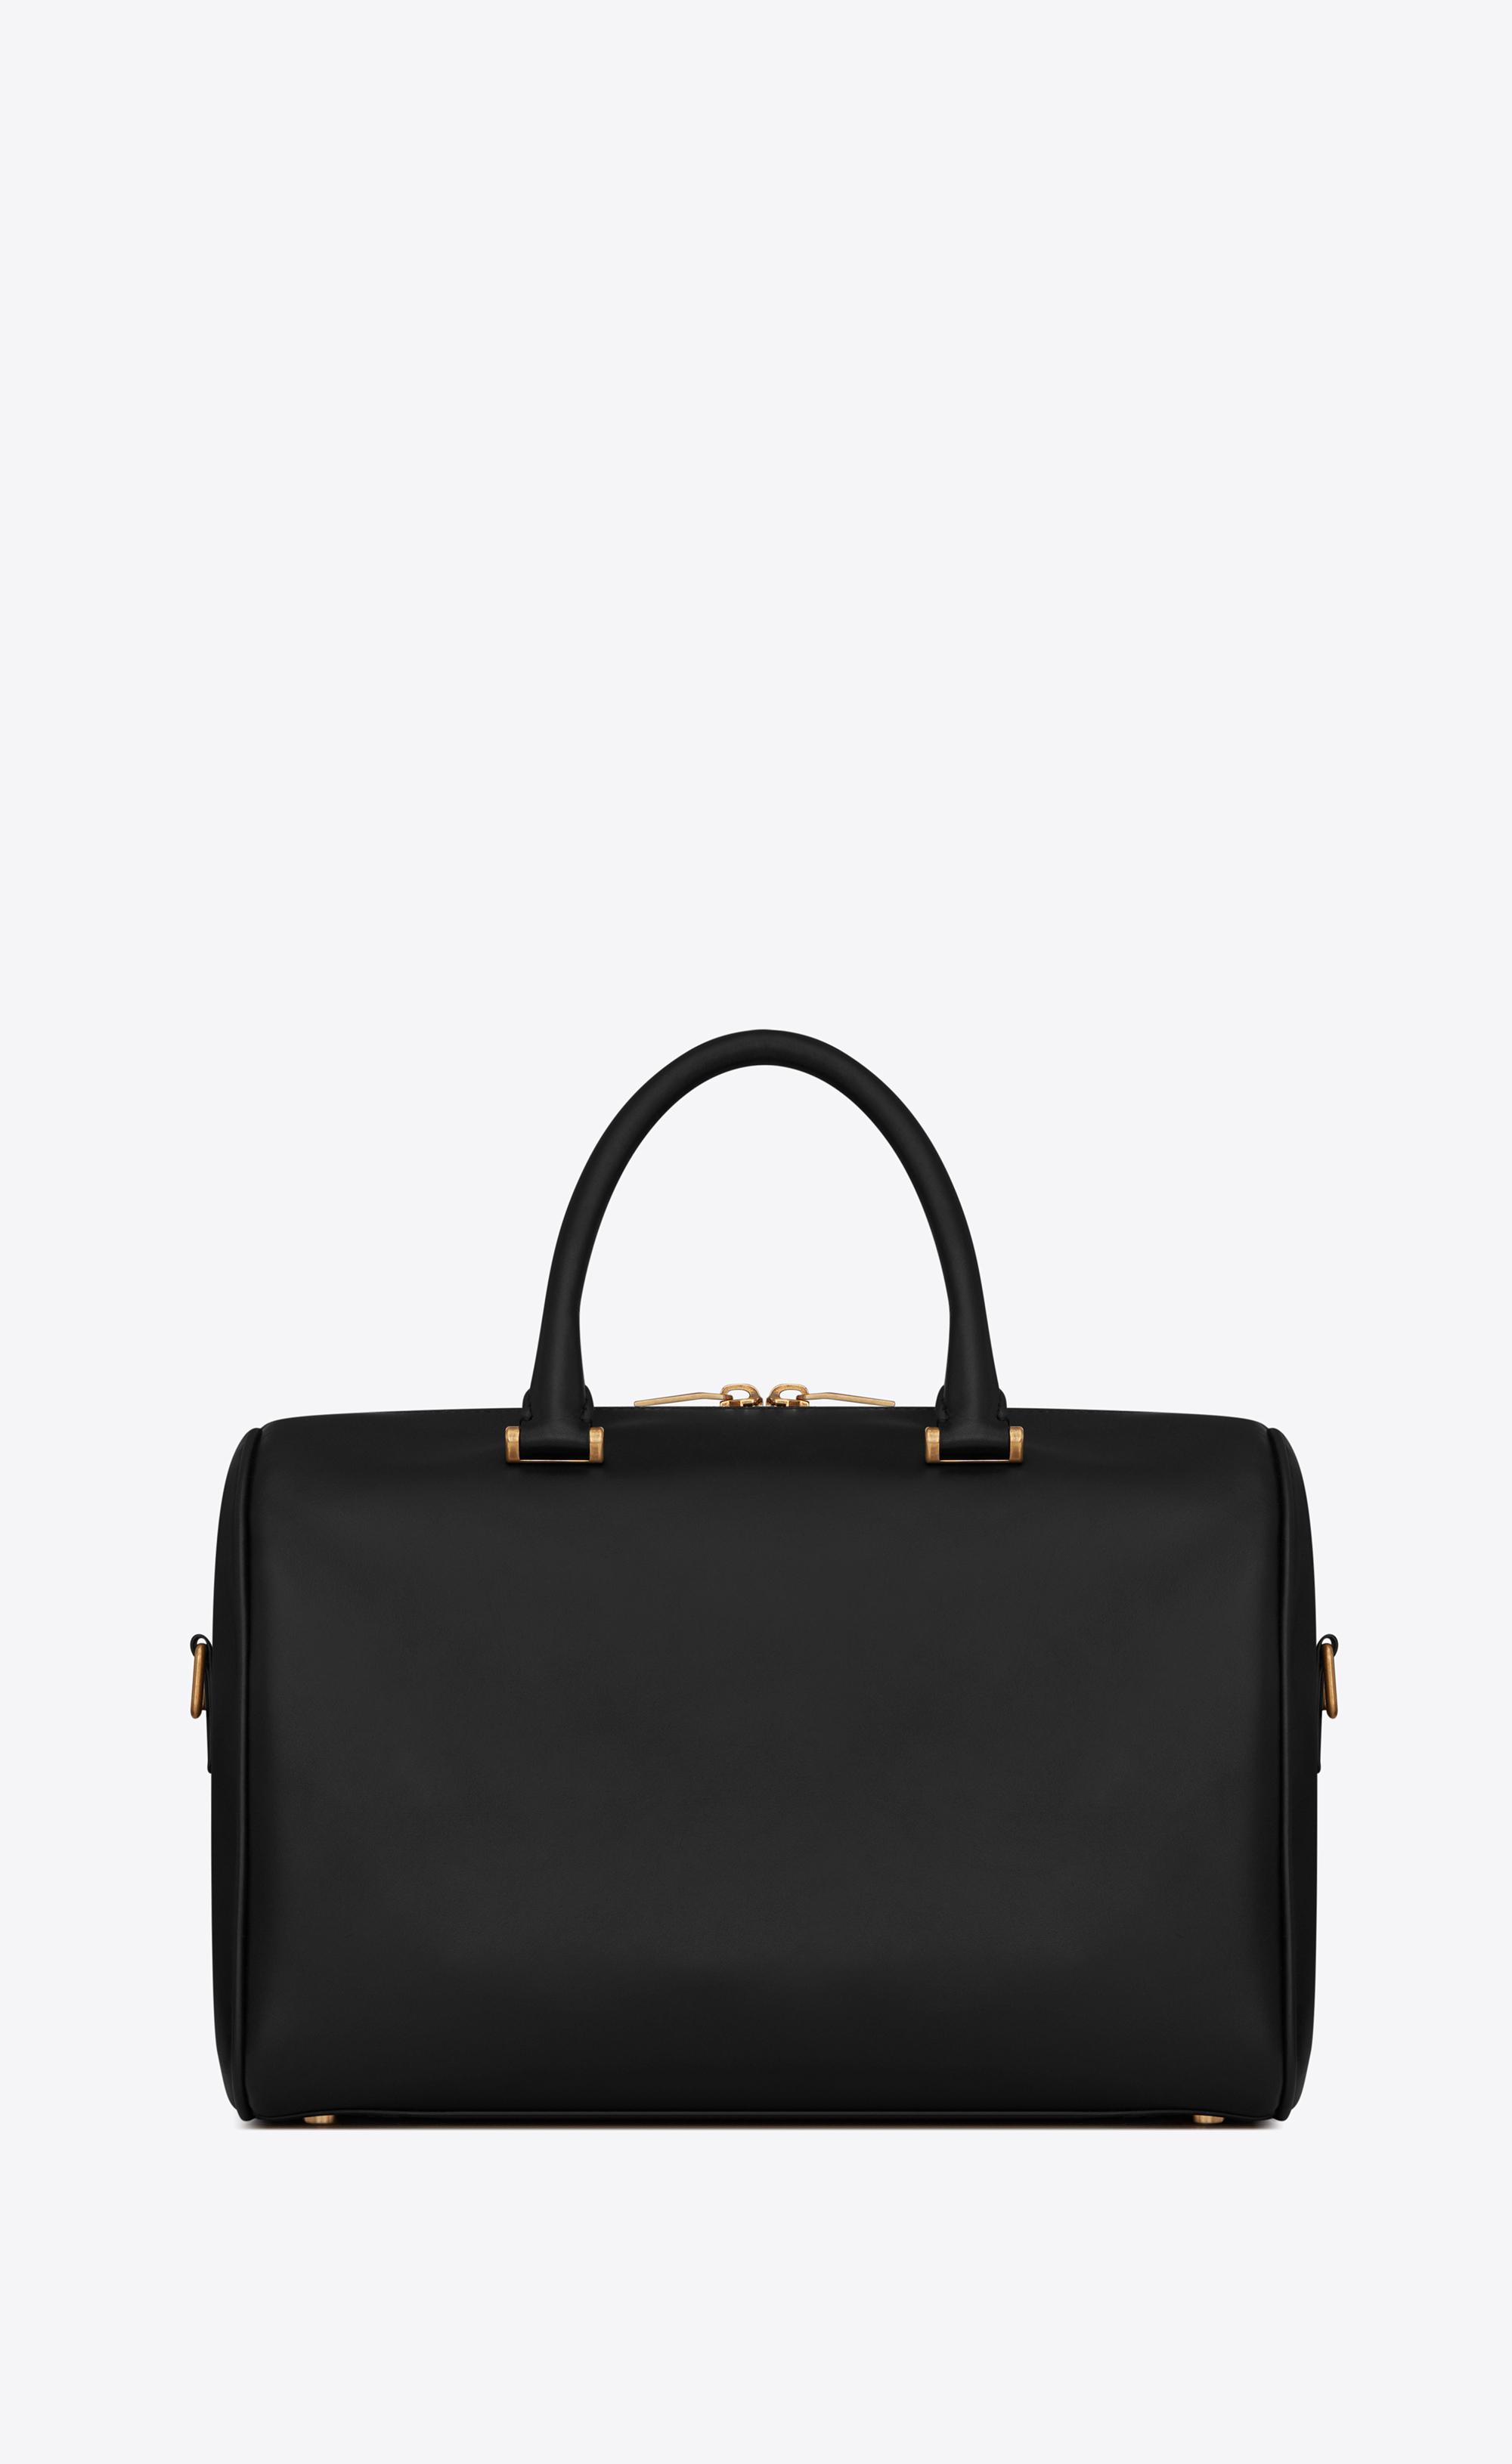 bbfec114e4dc Saint Laurent - Black Duffle 6 In Smooth Leather - Lyst. View fullscreen